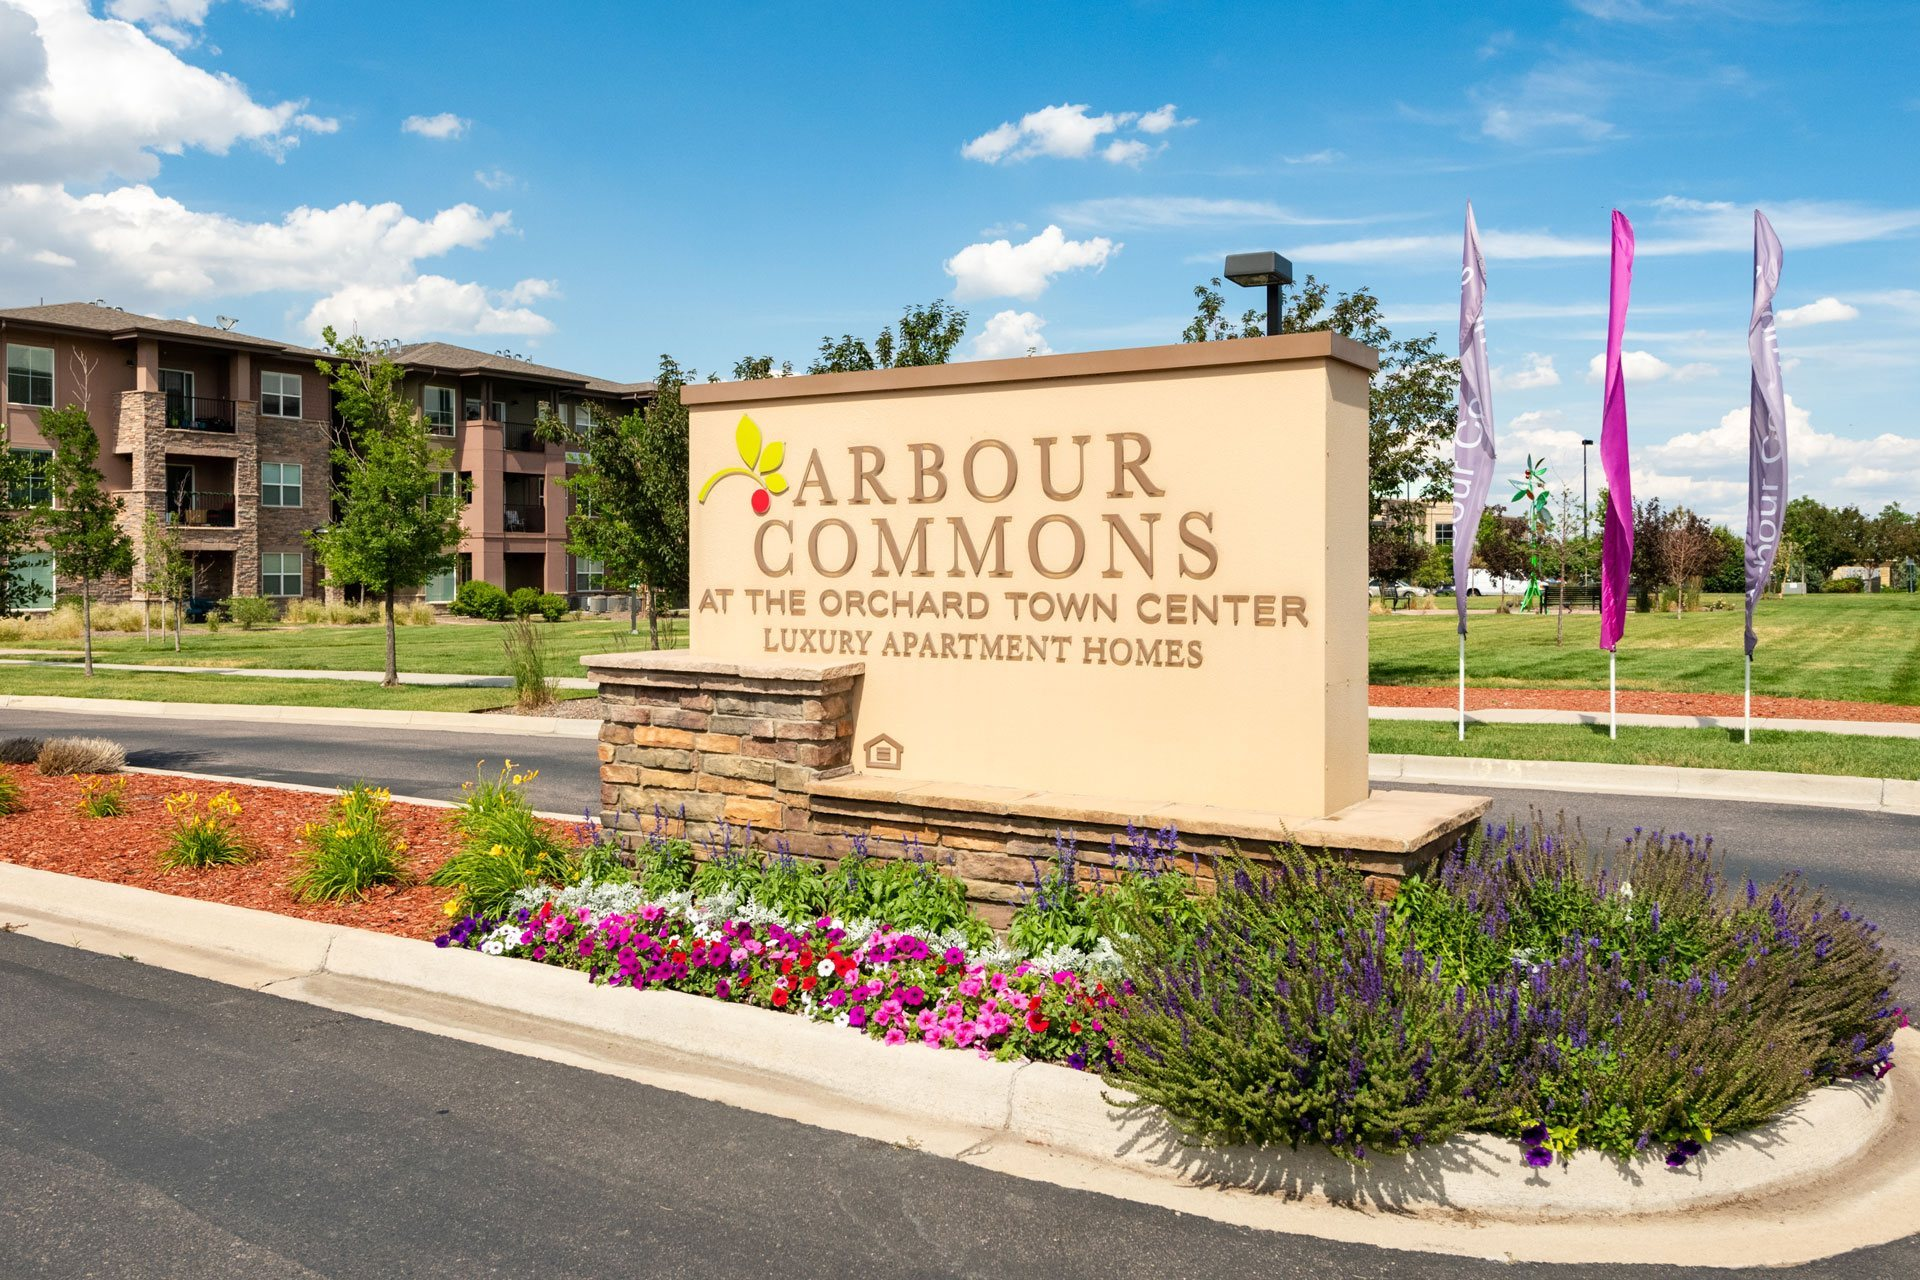 Welcoming Property Signage at Arbour Commons, Westminster, CO, 80023